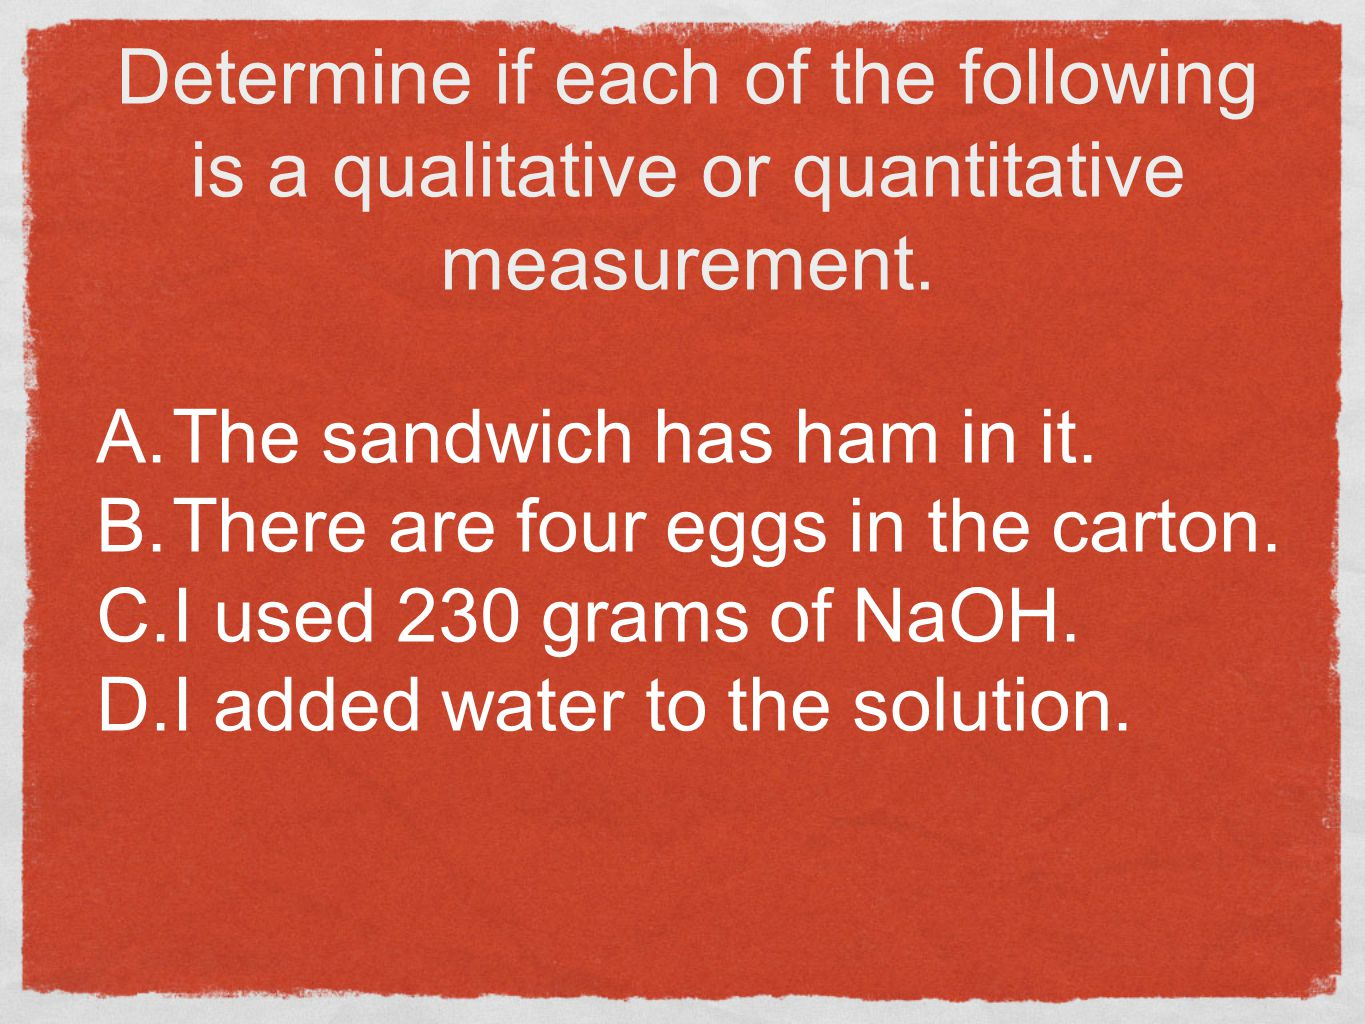 Determine if each of the following is a qualitative or quantitative measurement.